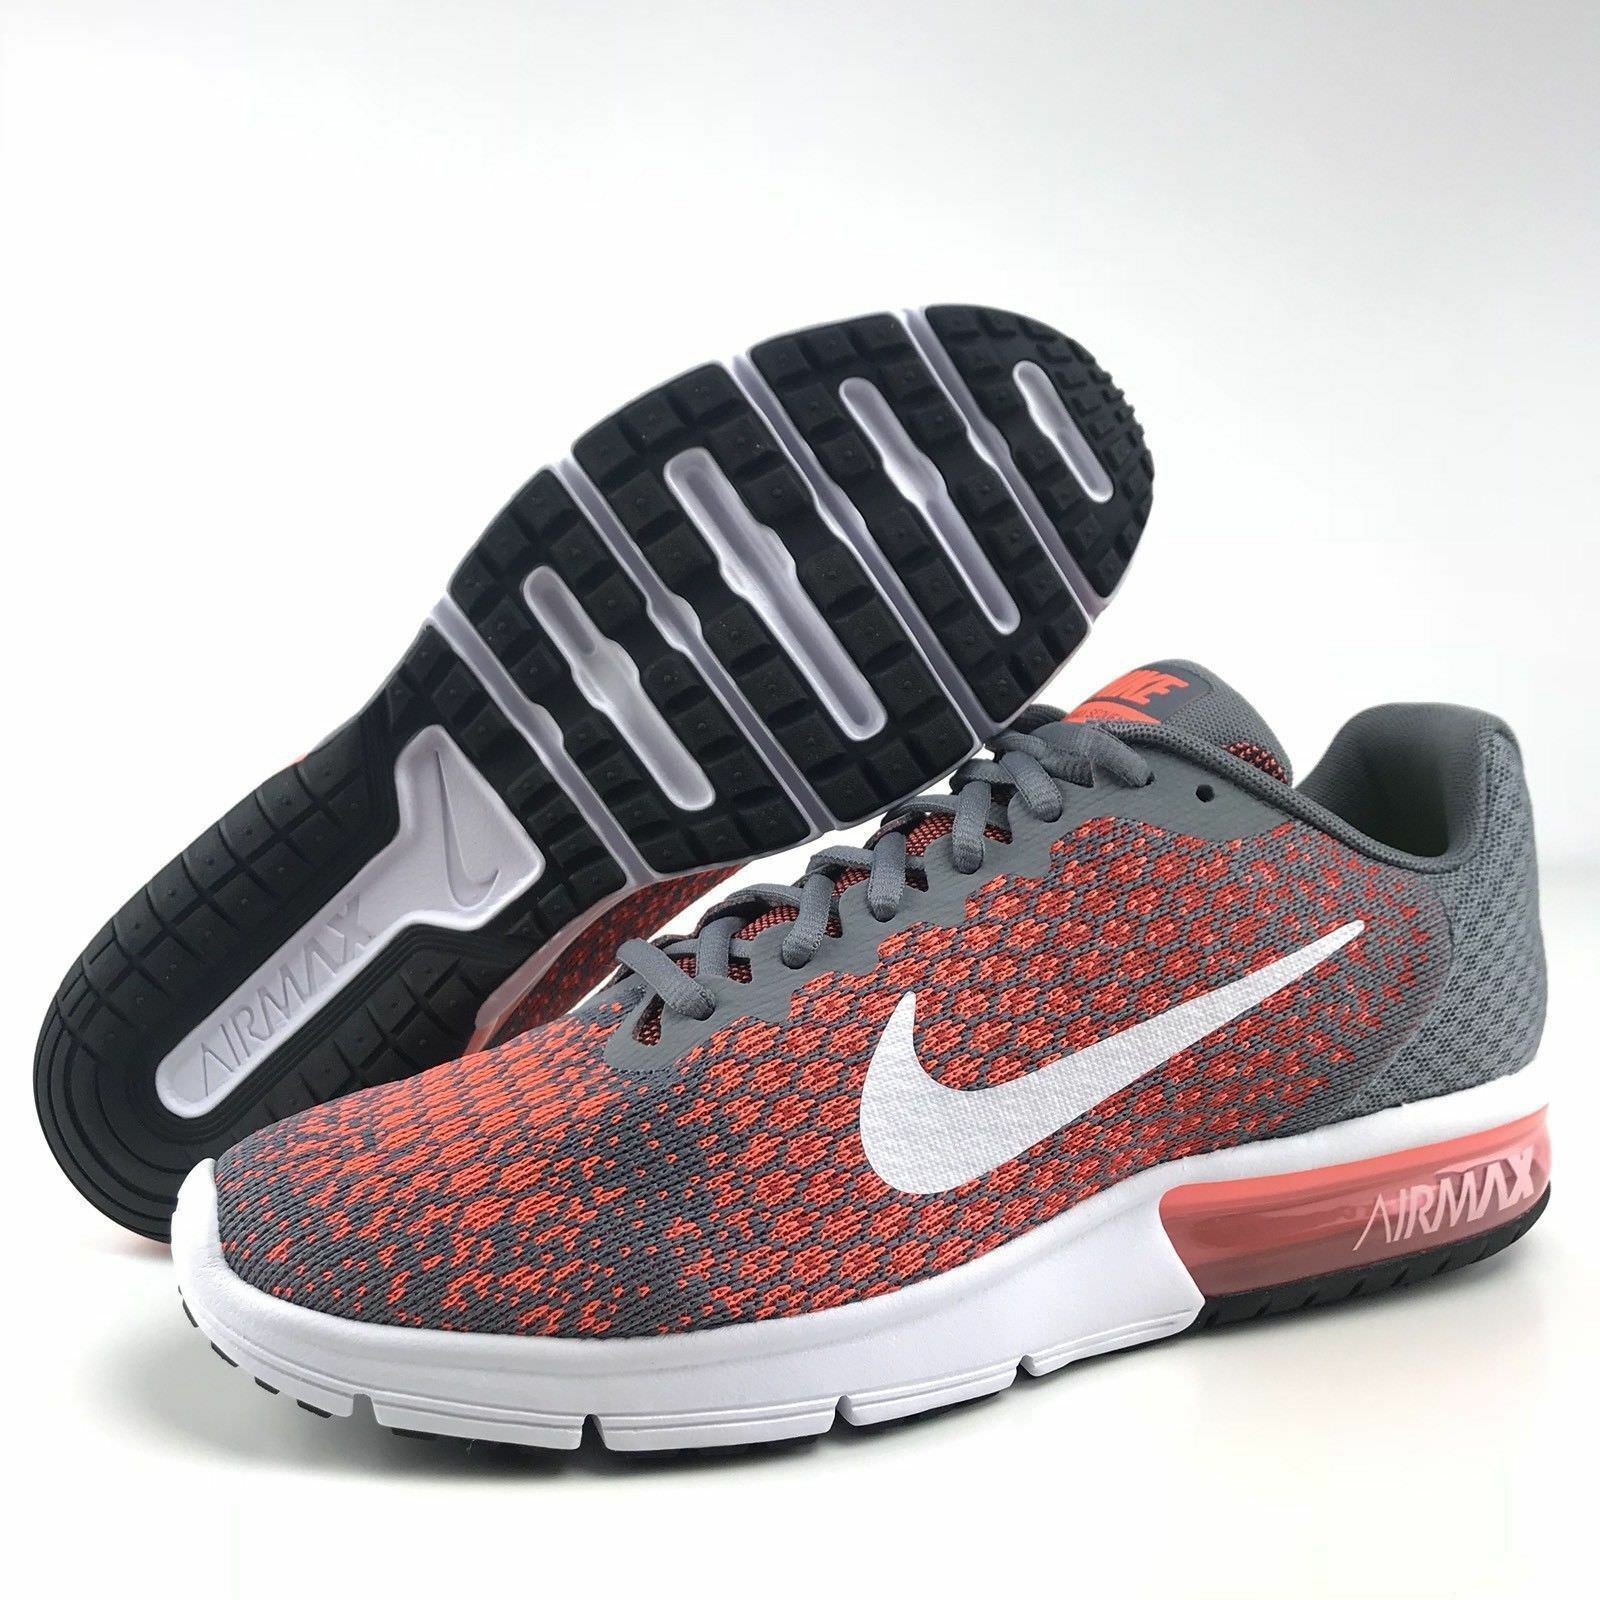 NIKE AIR MAX SEQUENT 2 ATHLETIC SHOE MEN SIZE 12